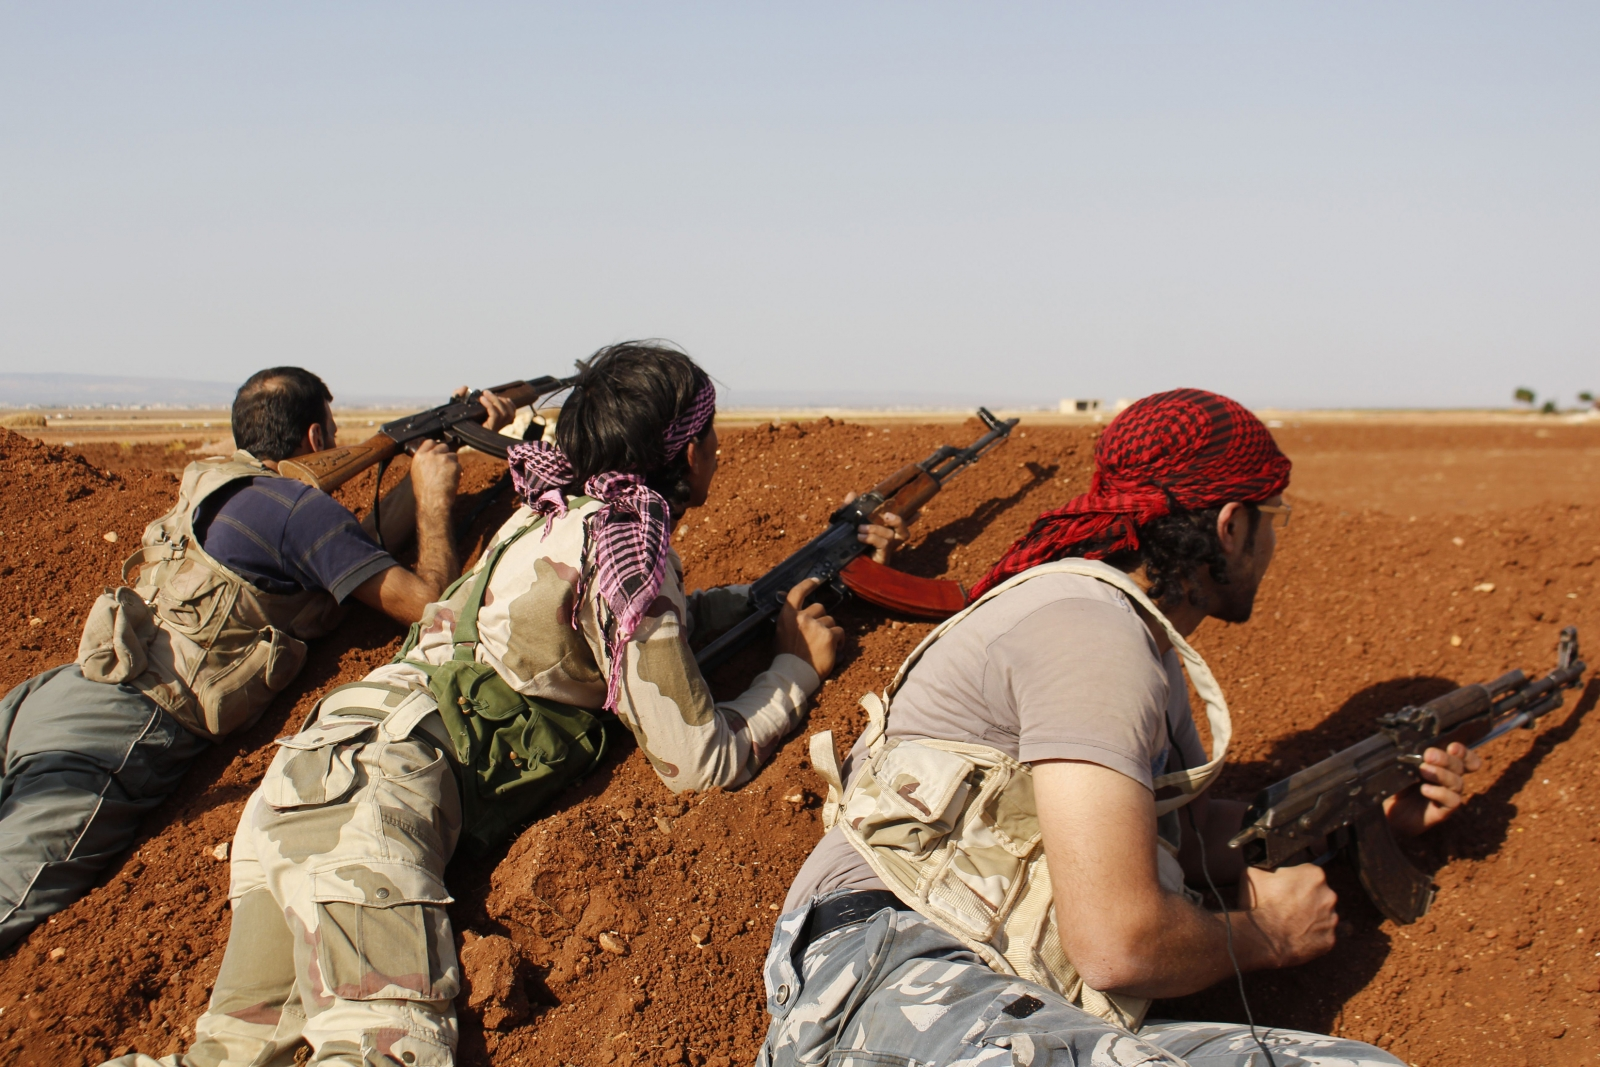 Fierce fighting between ISIS and Syrian rebels